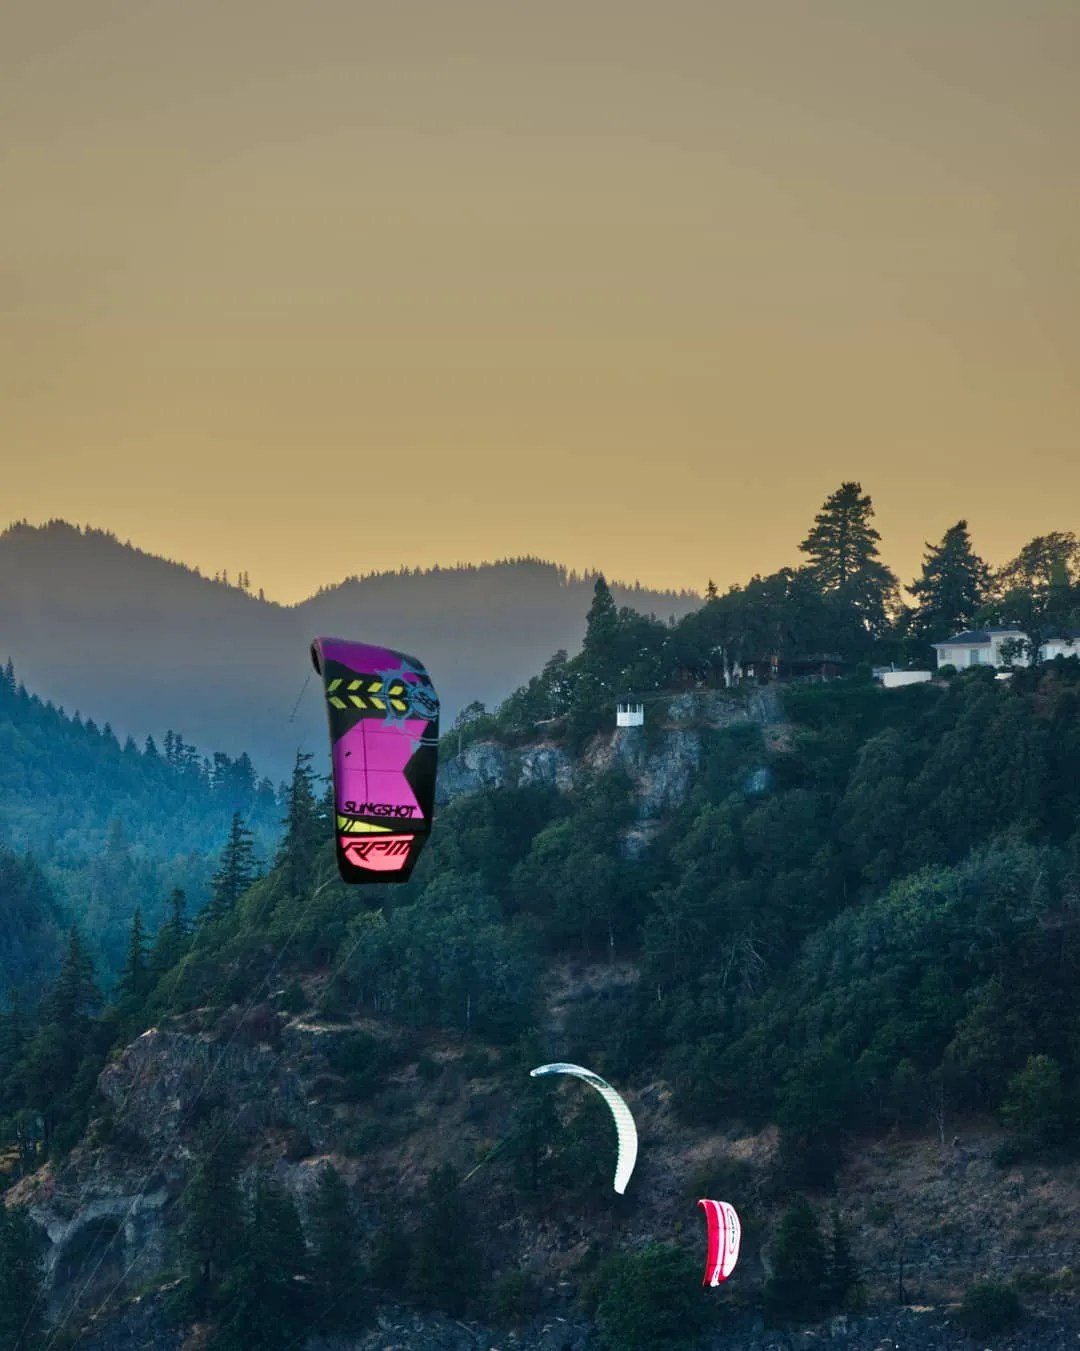 Kite sailors at Hood River (credit: Jamison Logan)